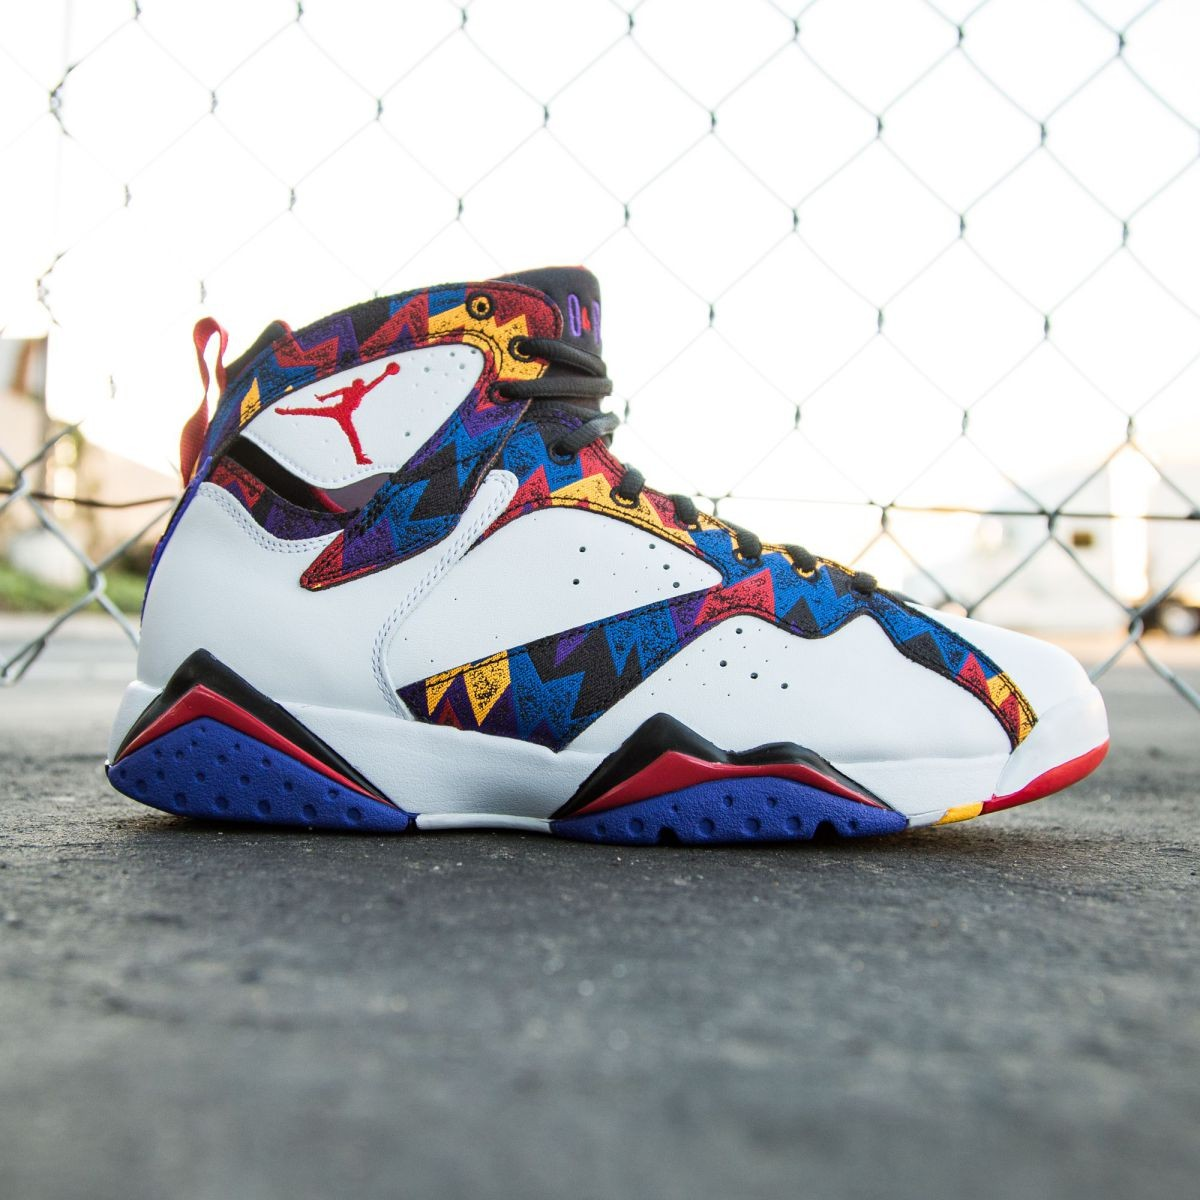 new concept e96c4 1325e Jordan Men Air Jordan 7 Retro white university red black bright concord